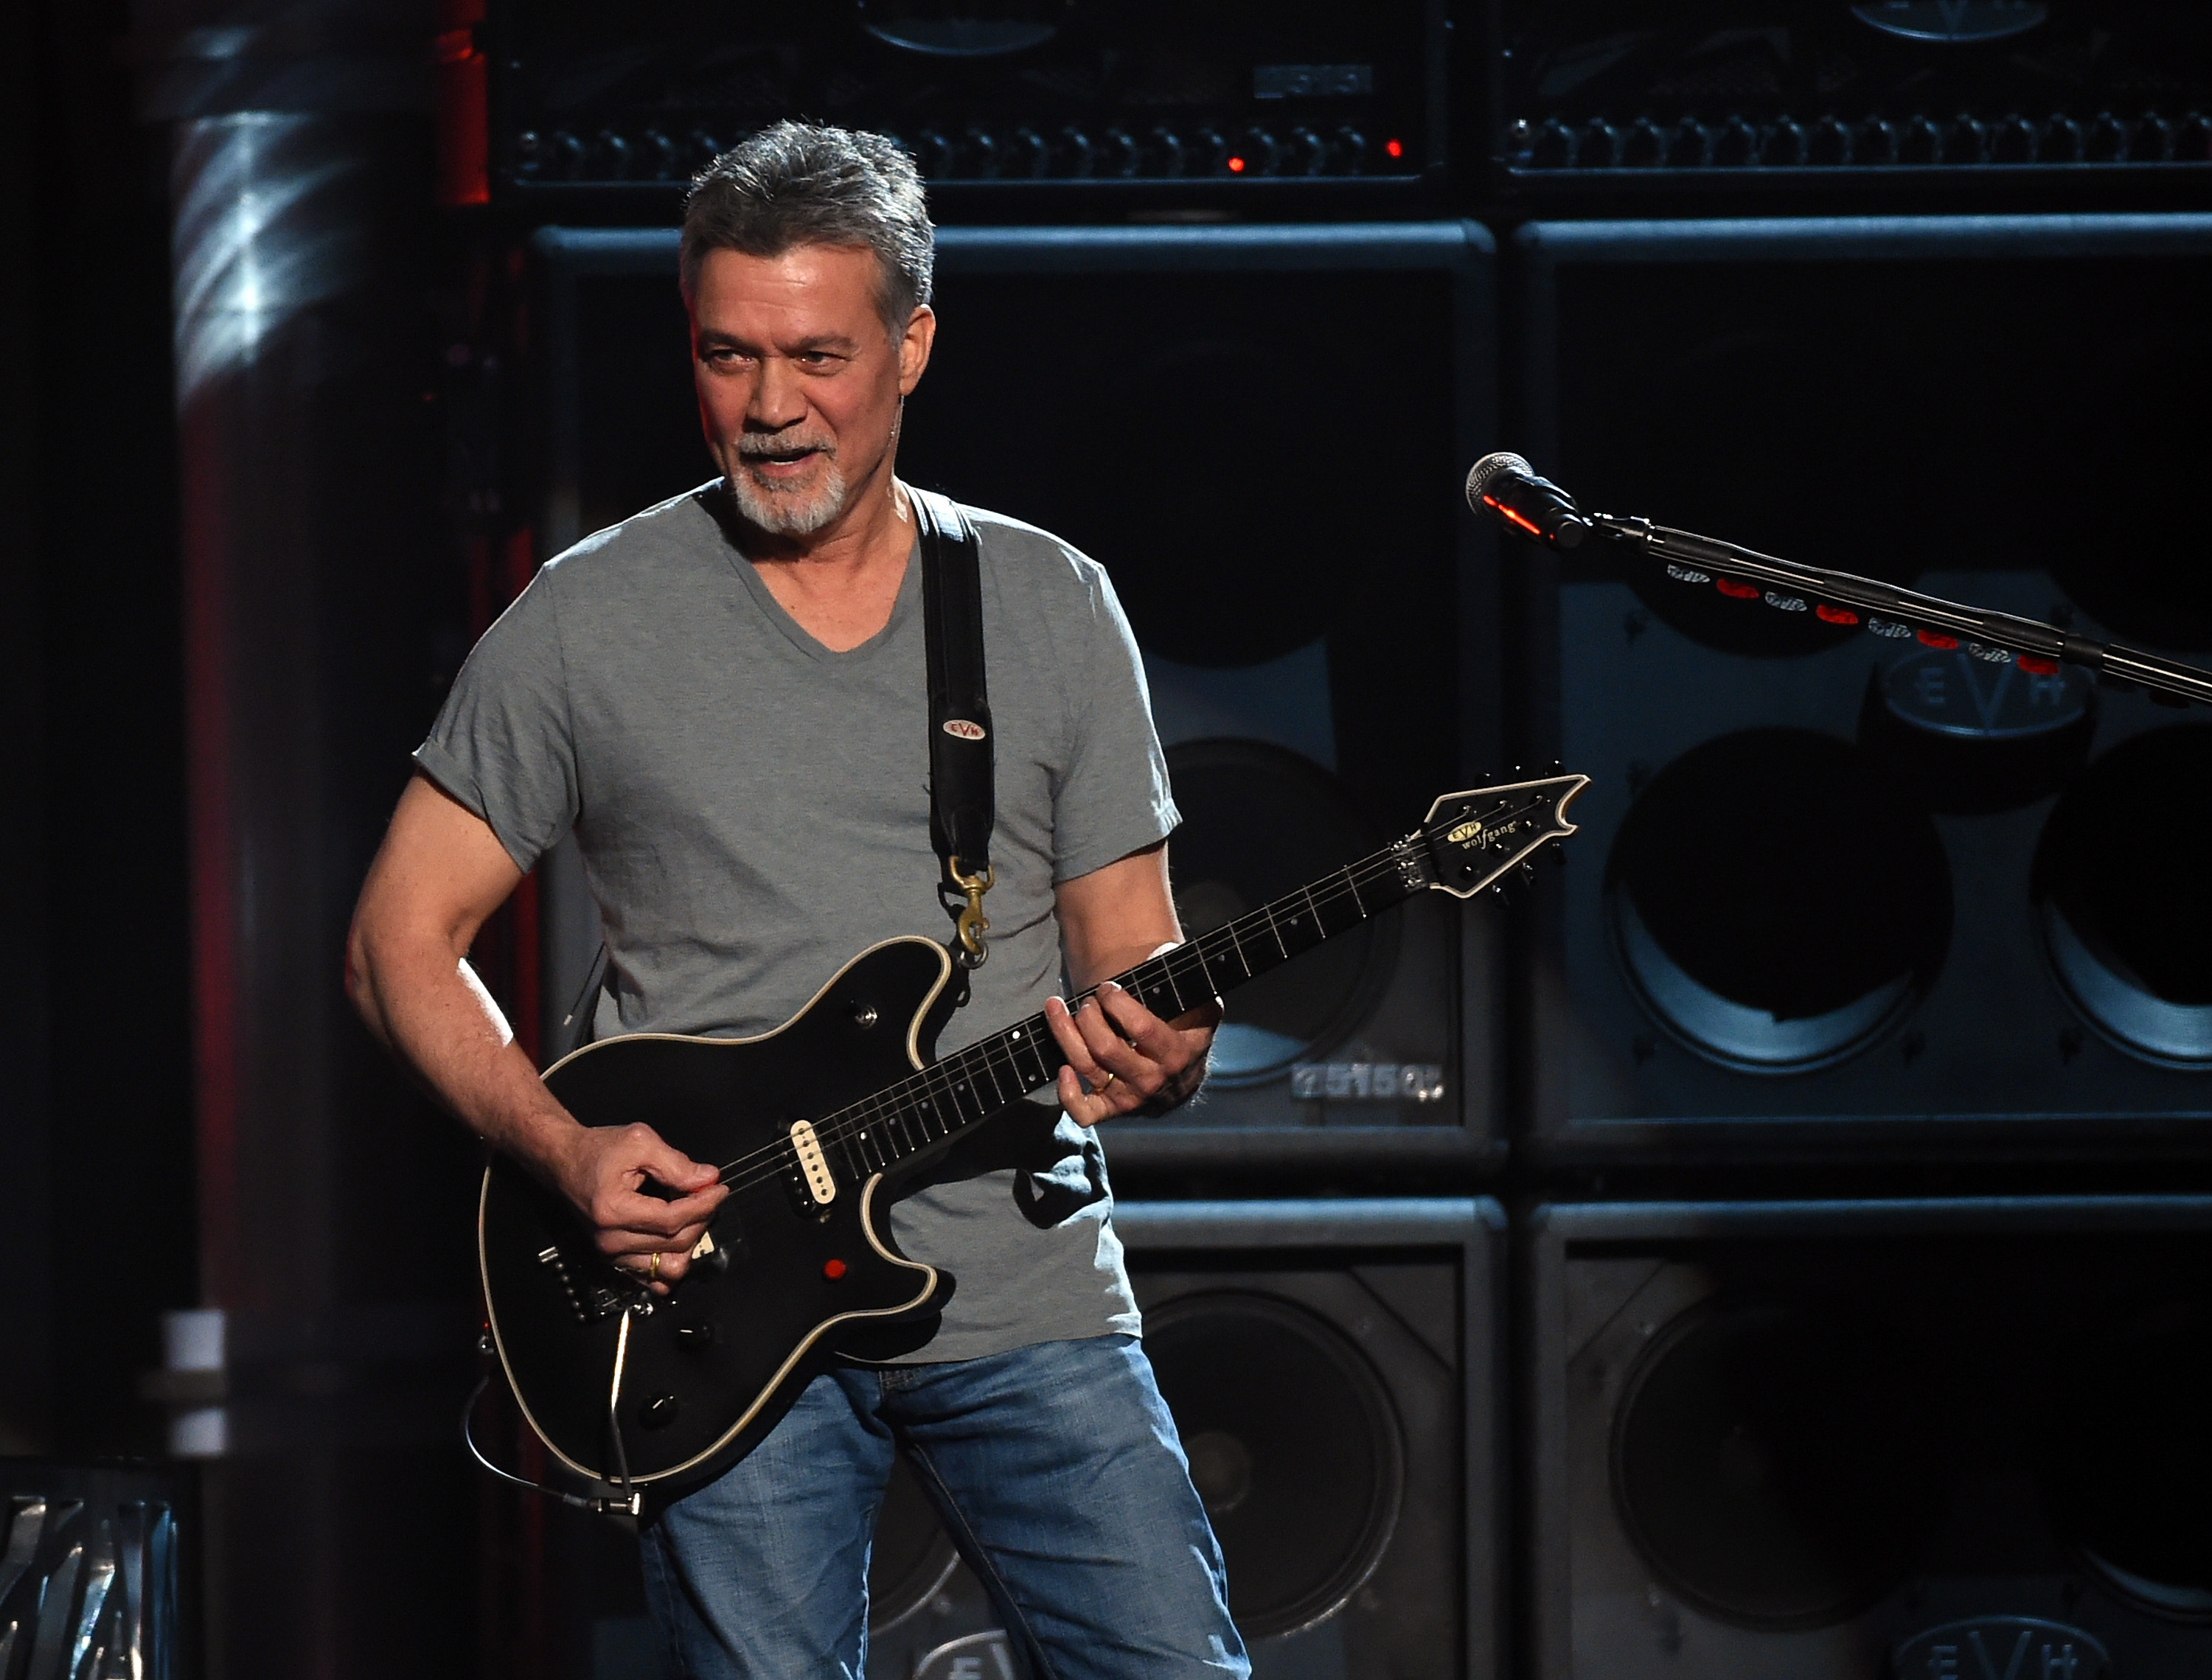 Musician Eddie Van Halen of Van Halen performs onstage during the 2015 Billboard Music Awards at MGM Grand Garden Arena on May 17, 2015 in Las Vegas, Nevada. (Photo by Ethan Miller/Getty Images)